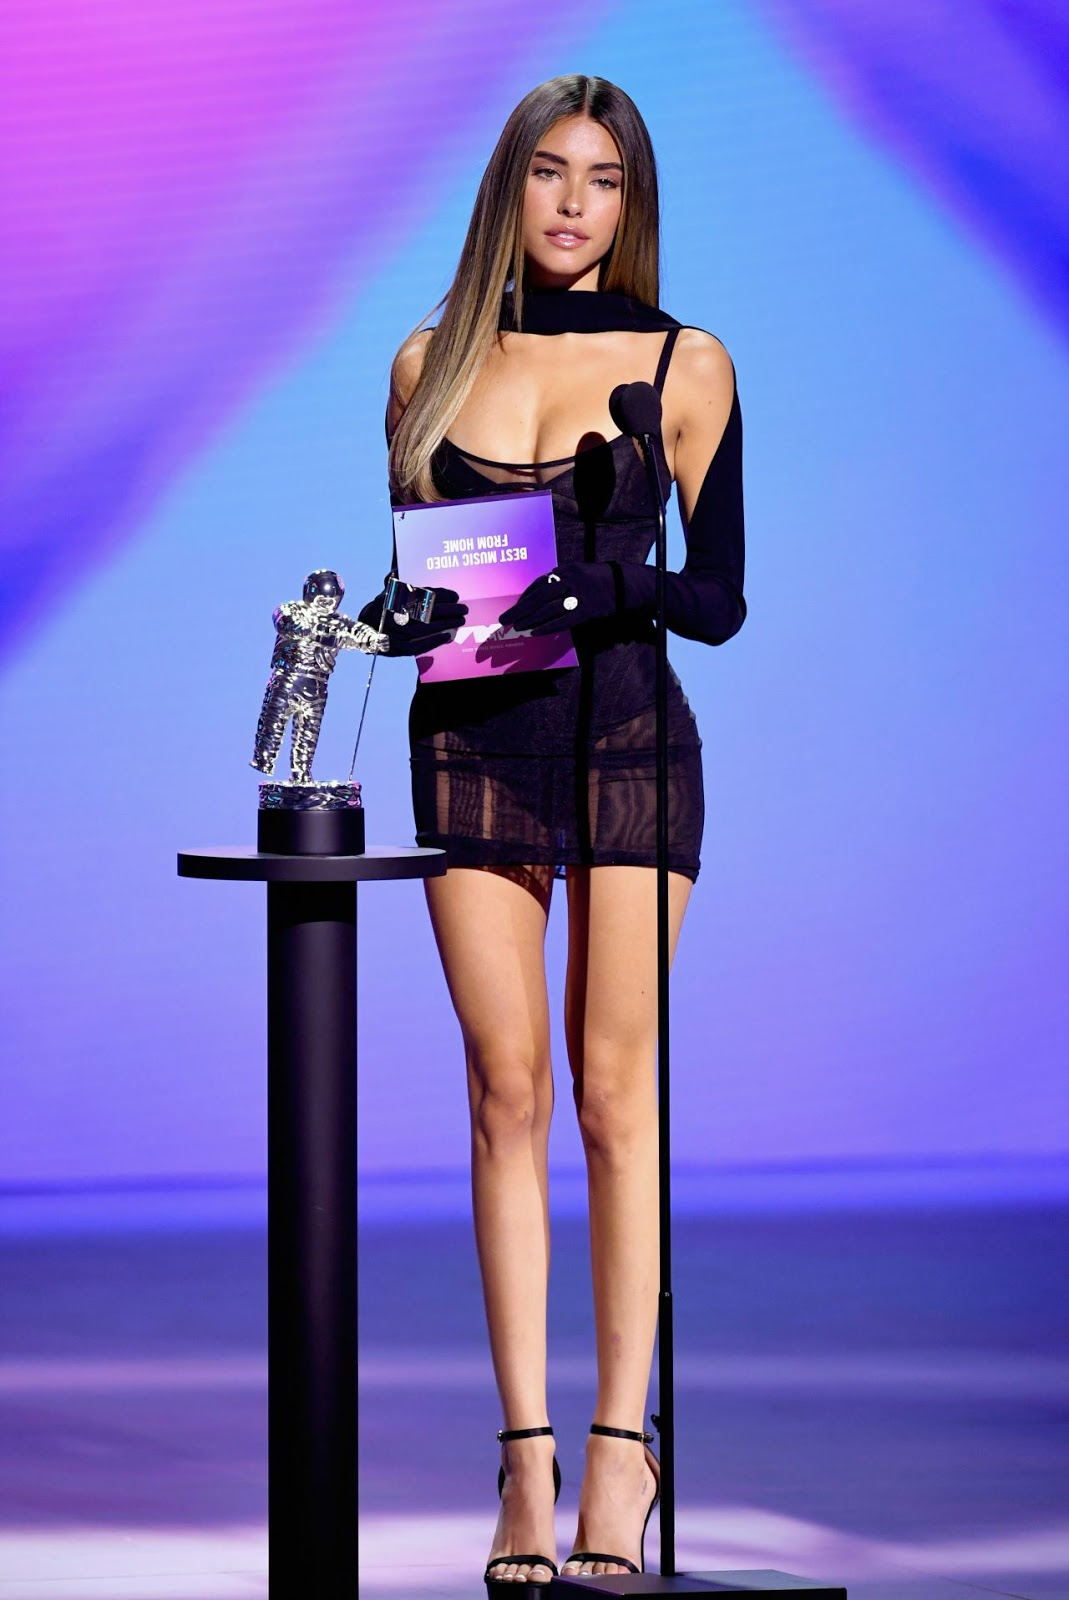 Madison Beer shows off her legs in a little black dress at the 2020 MTV Video Music Awards